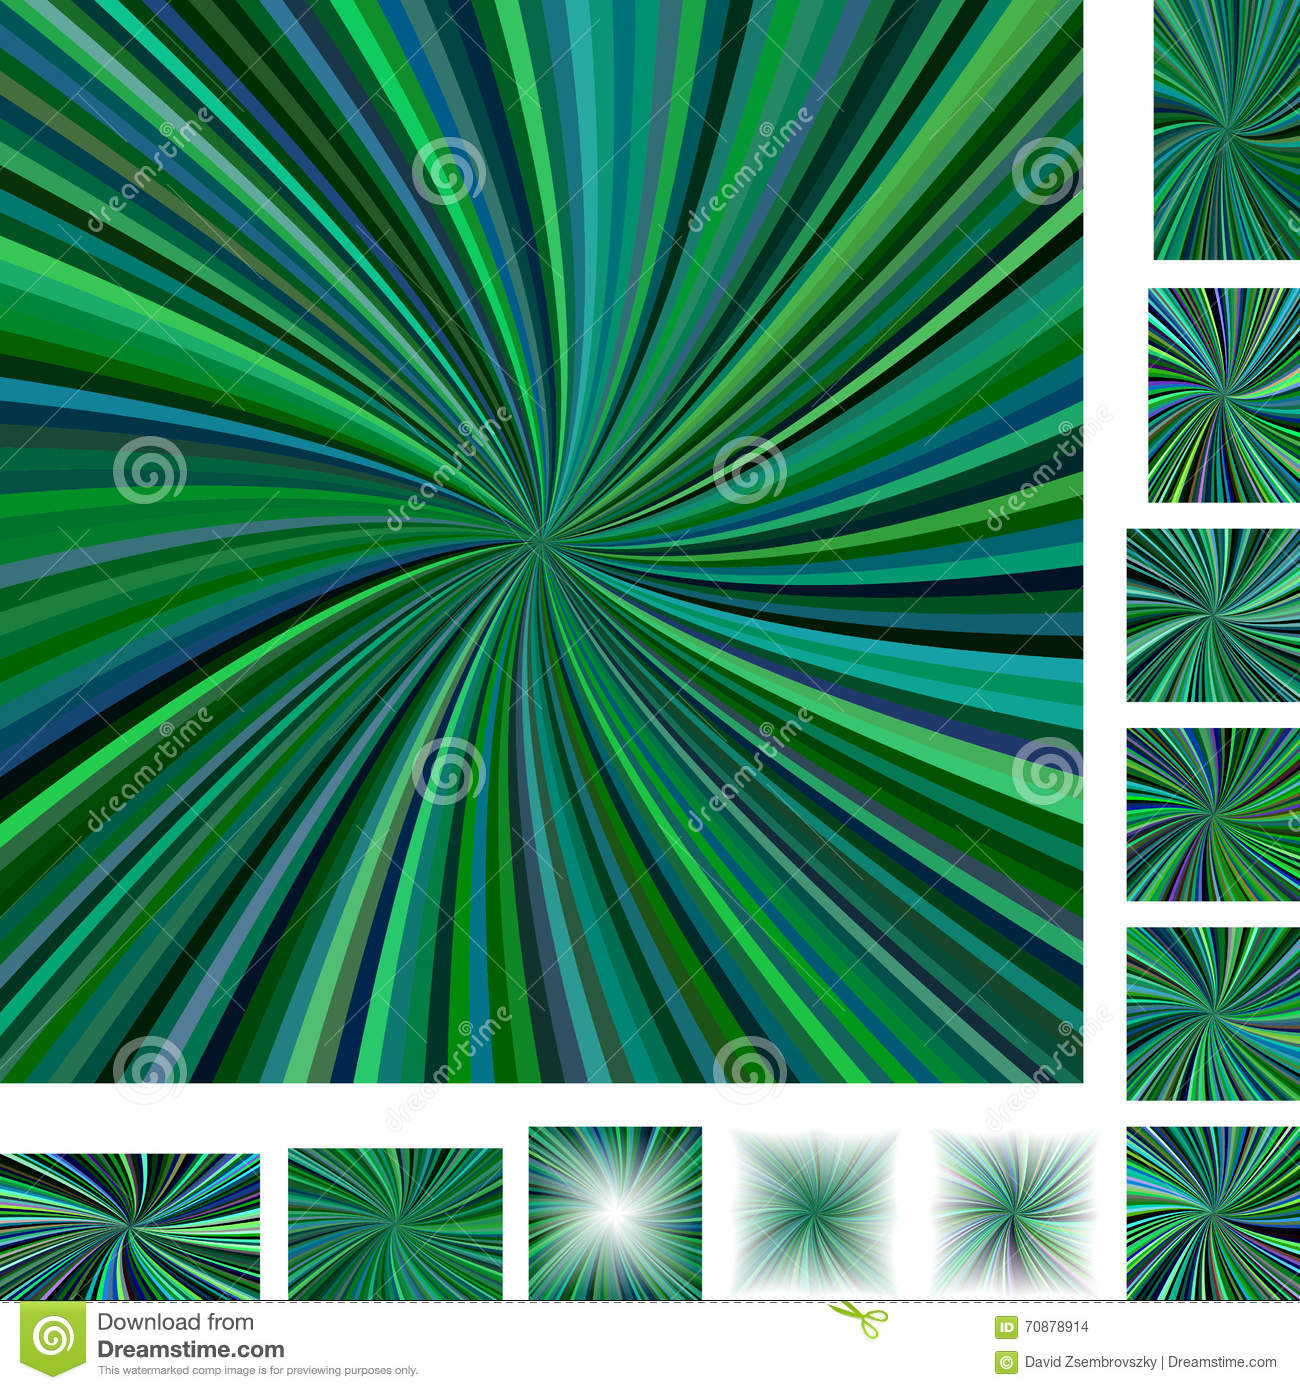 Green spiral background set